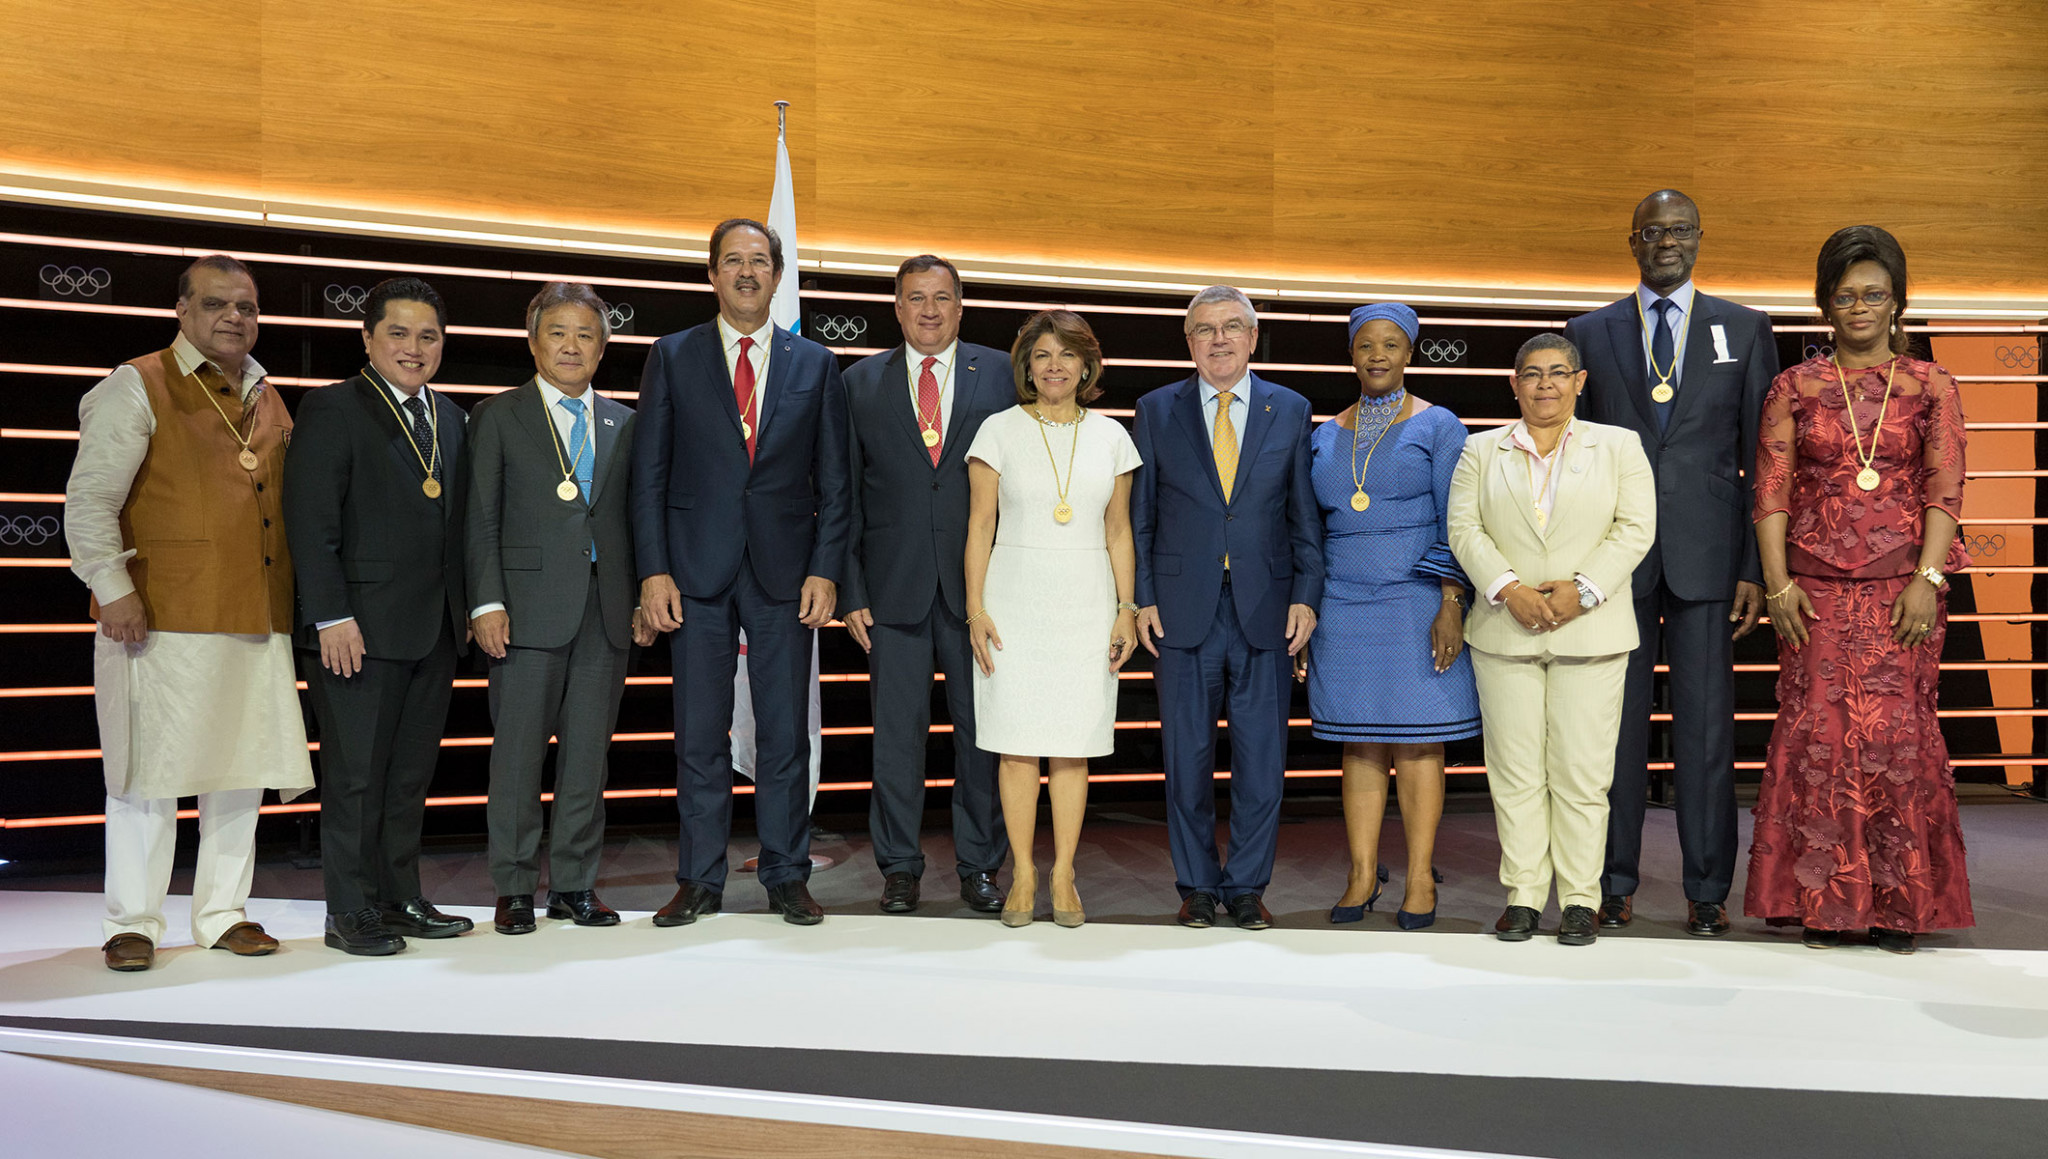 Tidjane Thiam, second right, was elected as an International Olympic Committee member in Lausanne last June ©IOC